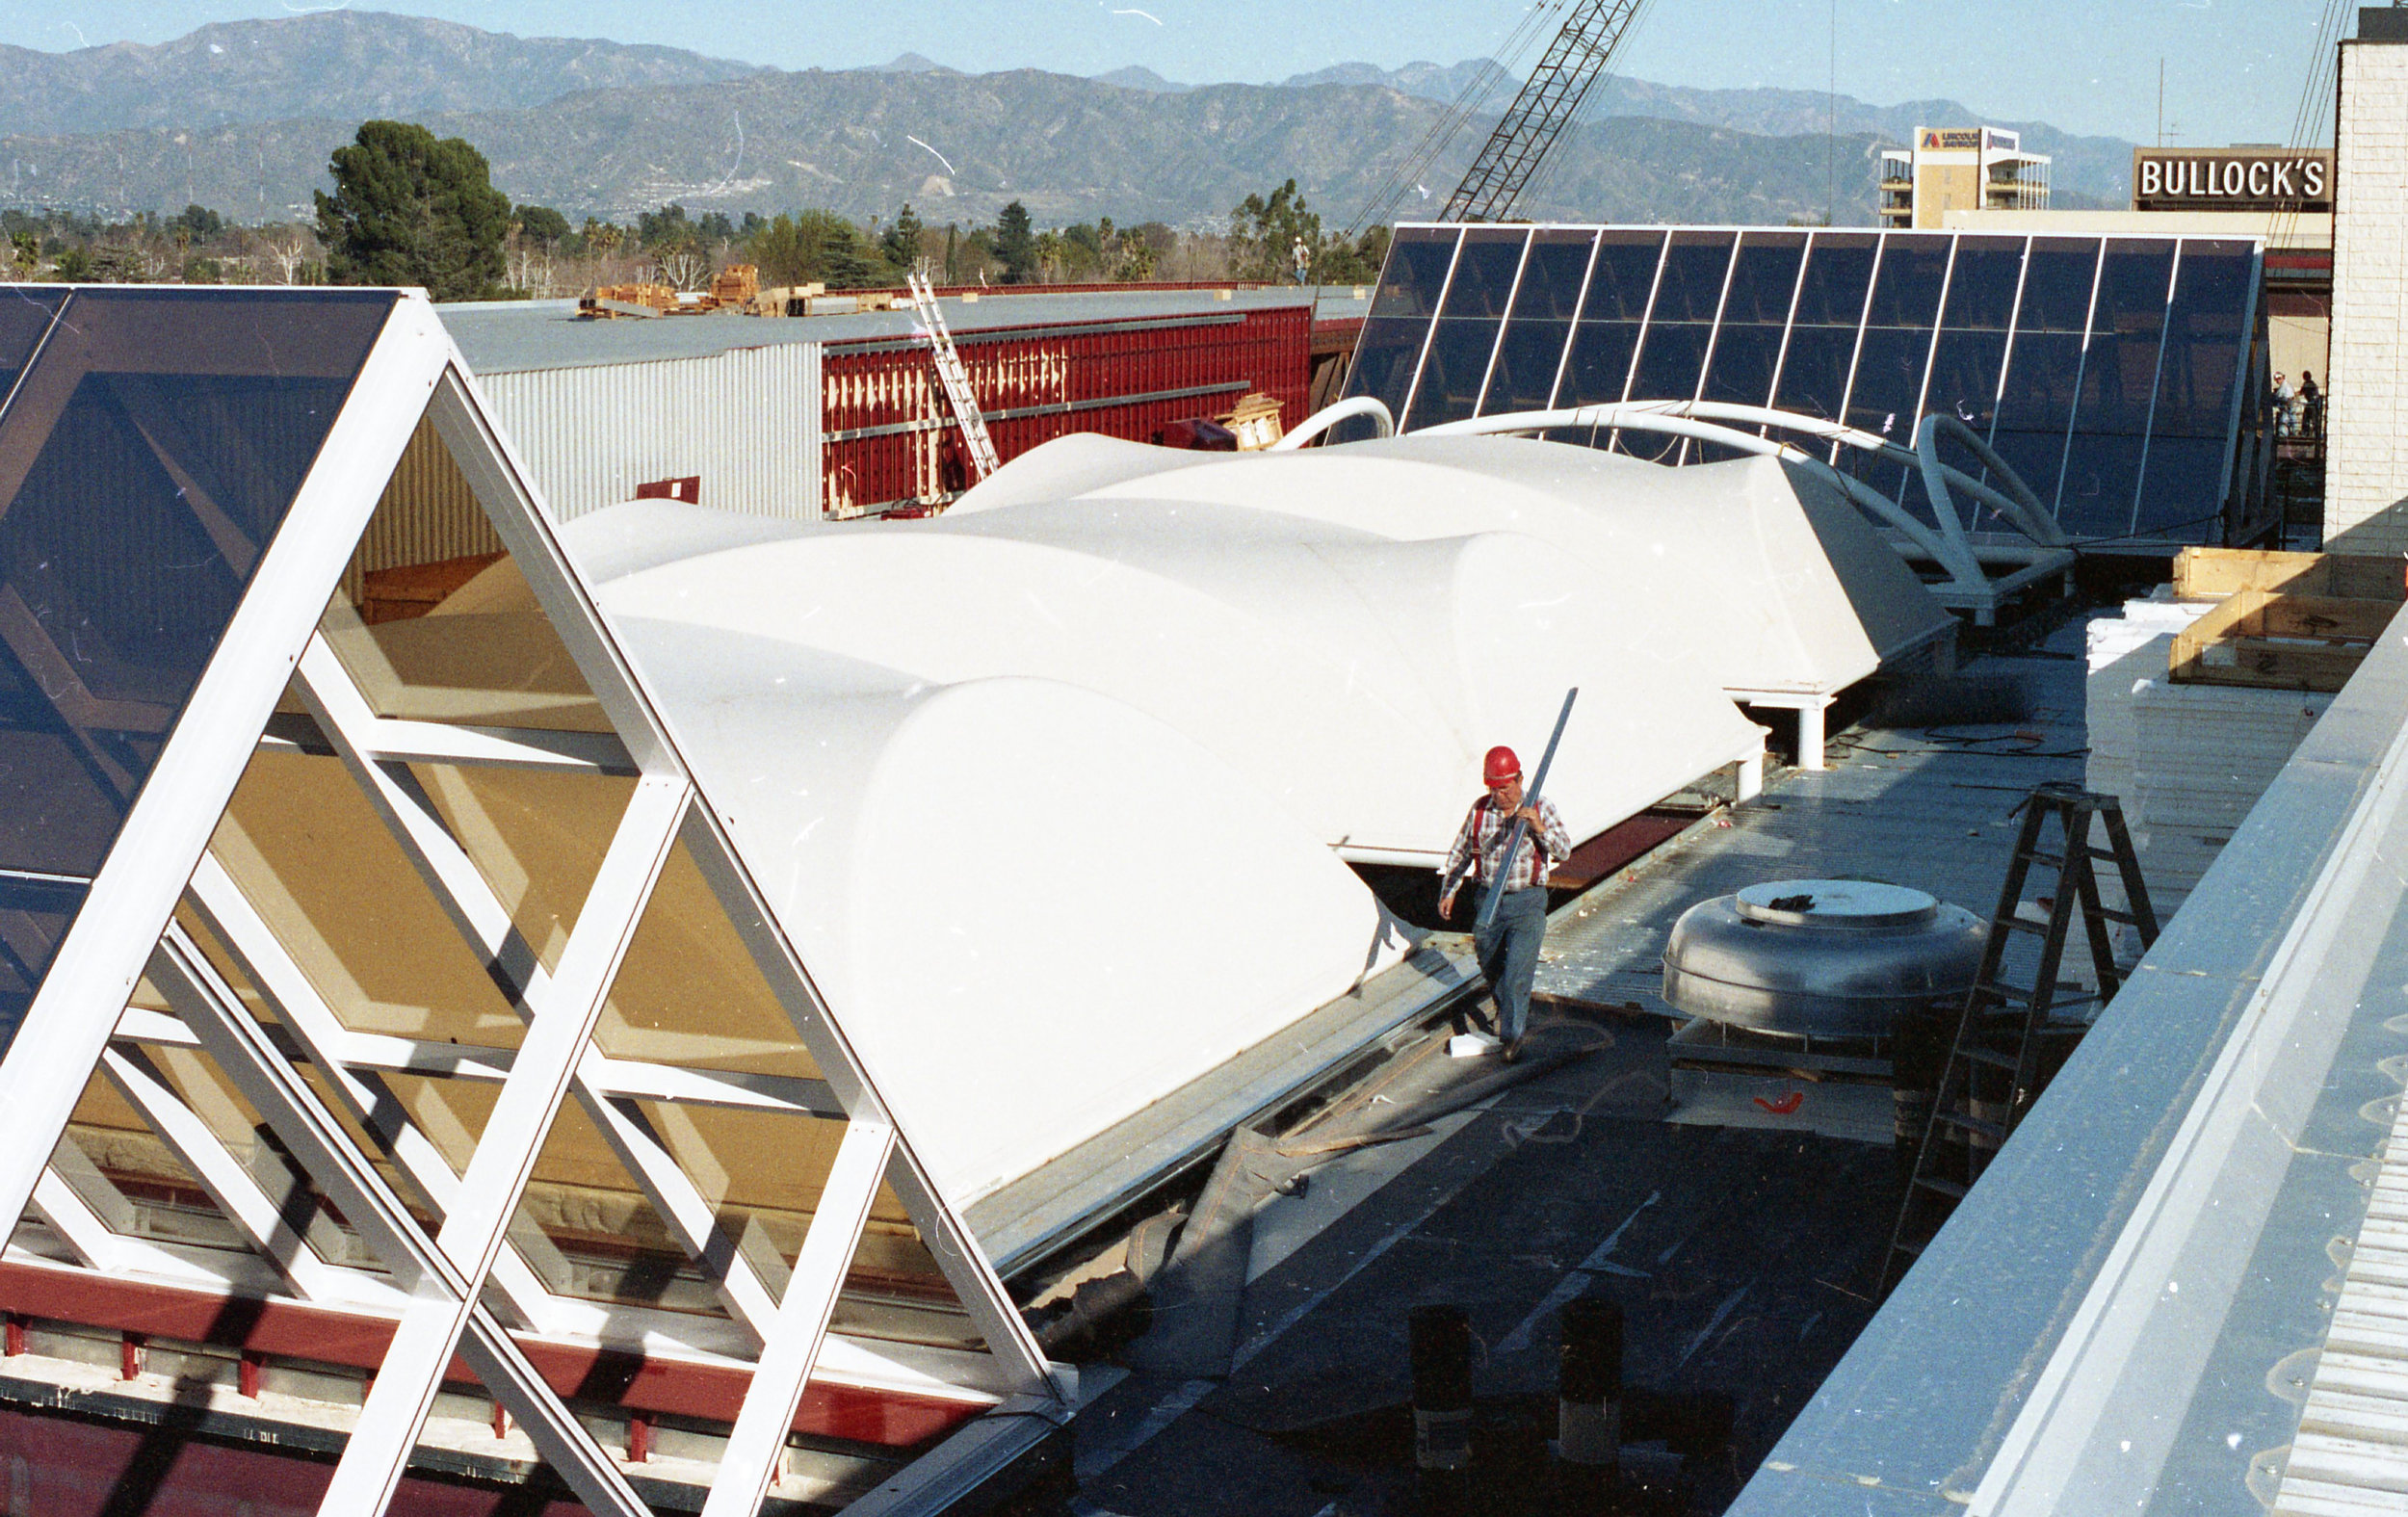 - A construction view showing the combination of fabric and glass skylights.